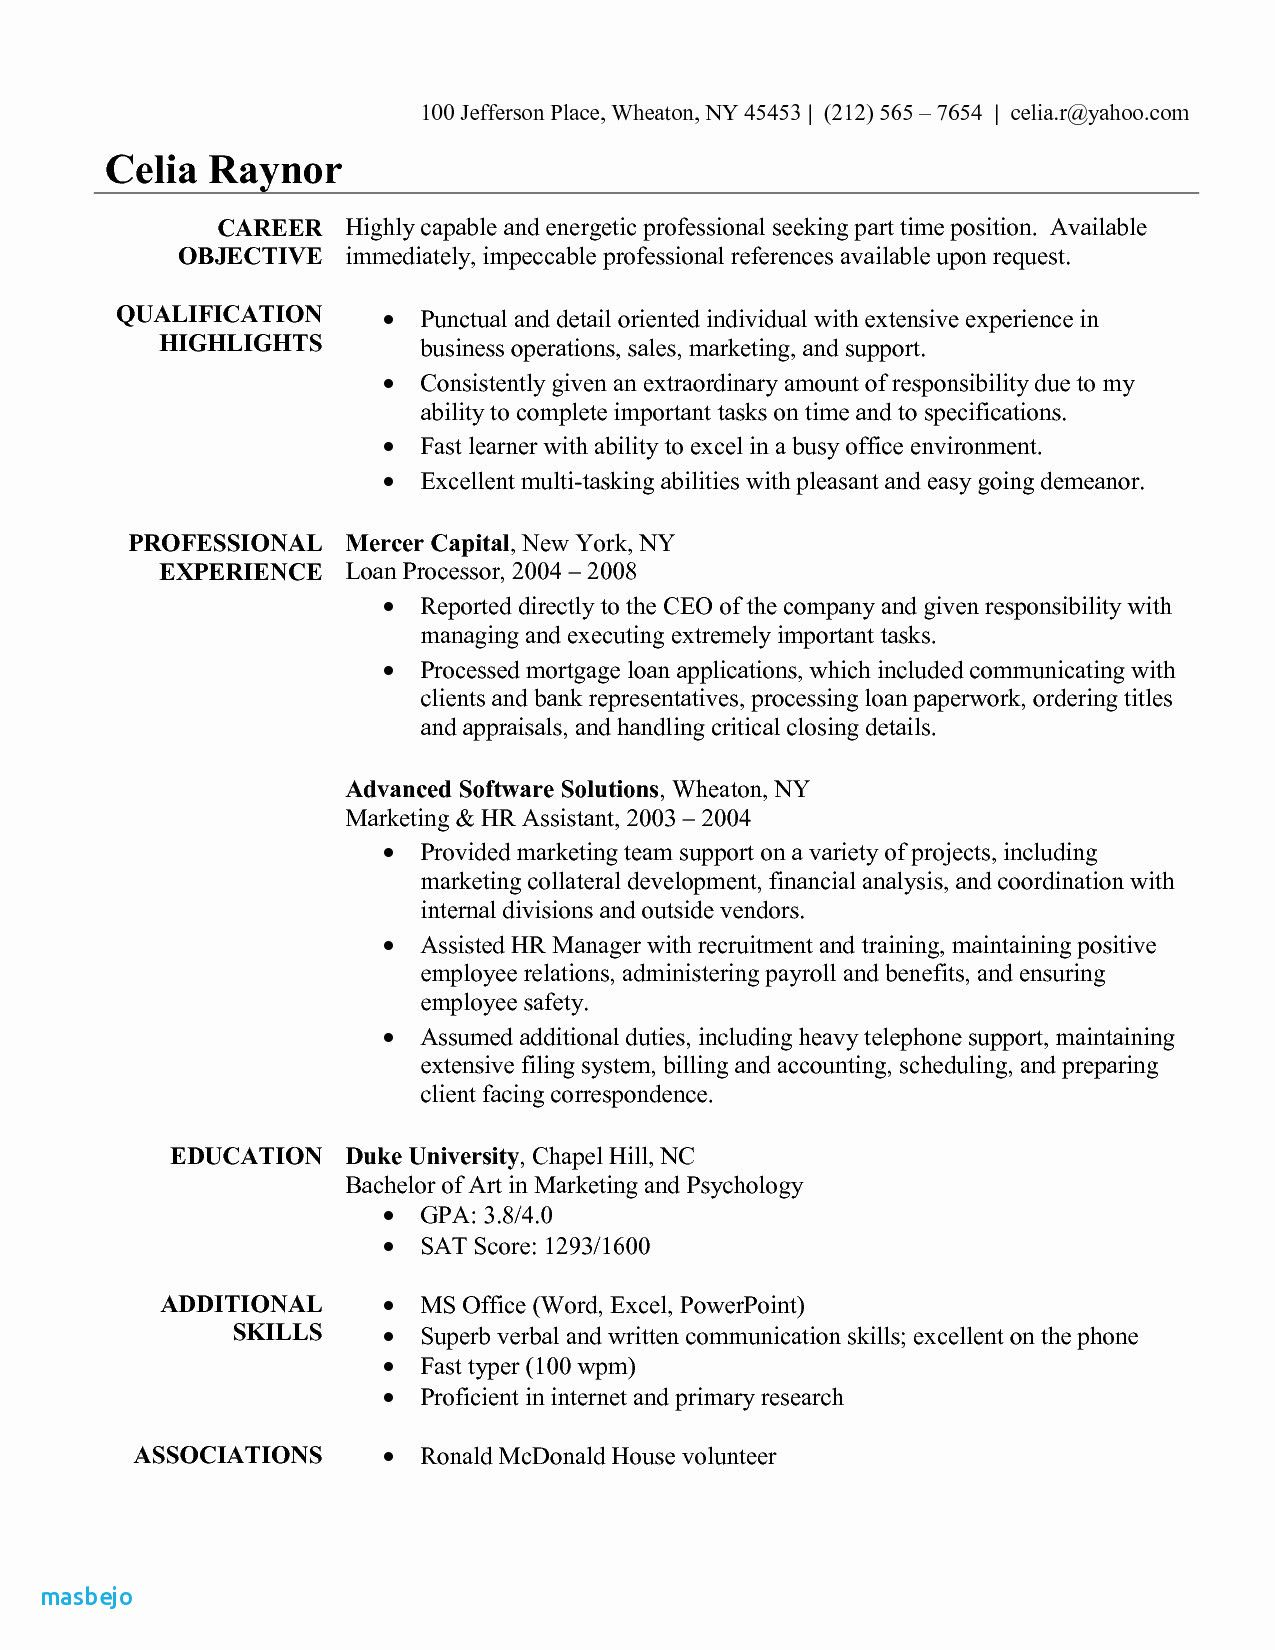 Resume Examples Quick Learner In 2020 Administrative Assistant